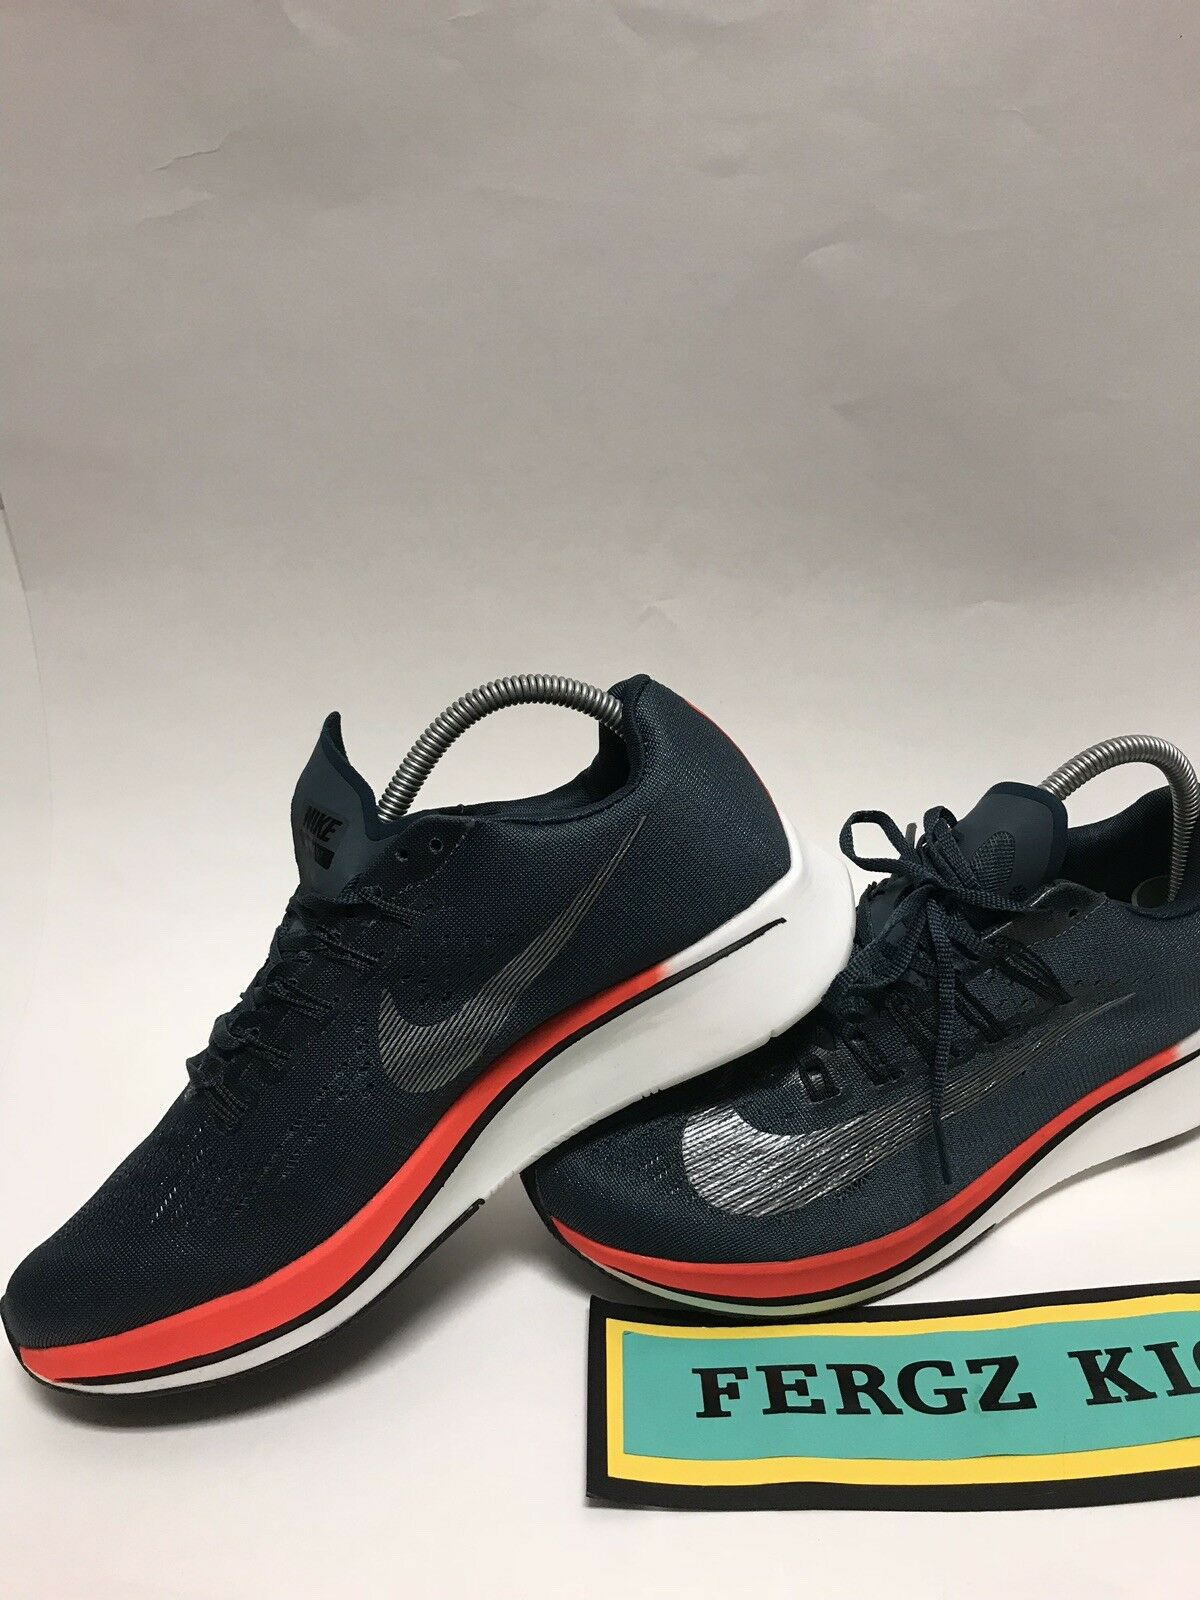 Nike Zoom Fly (880848-400) bluee Fox Men's Size 8.5 Running shoes Great Condition